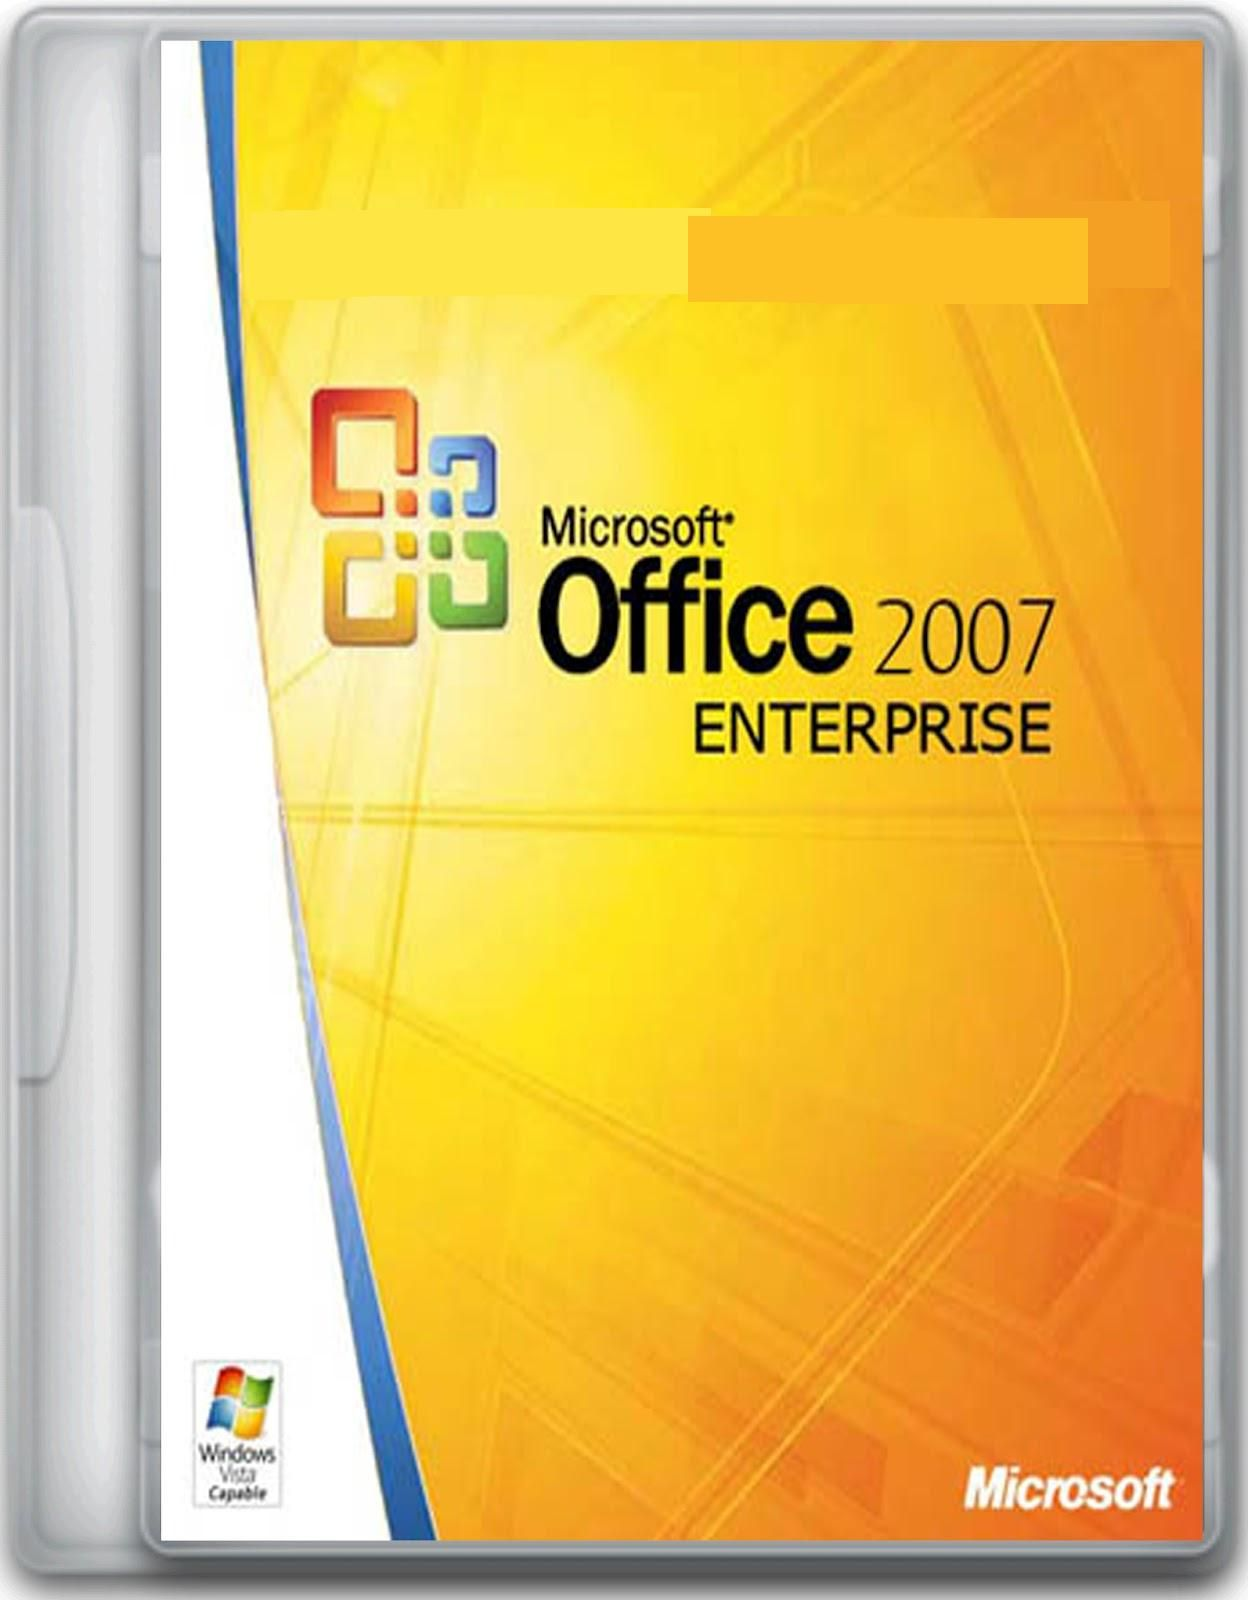 Microsoft Office 2007 Product key generator Free Download